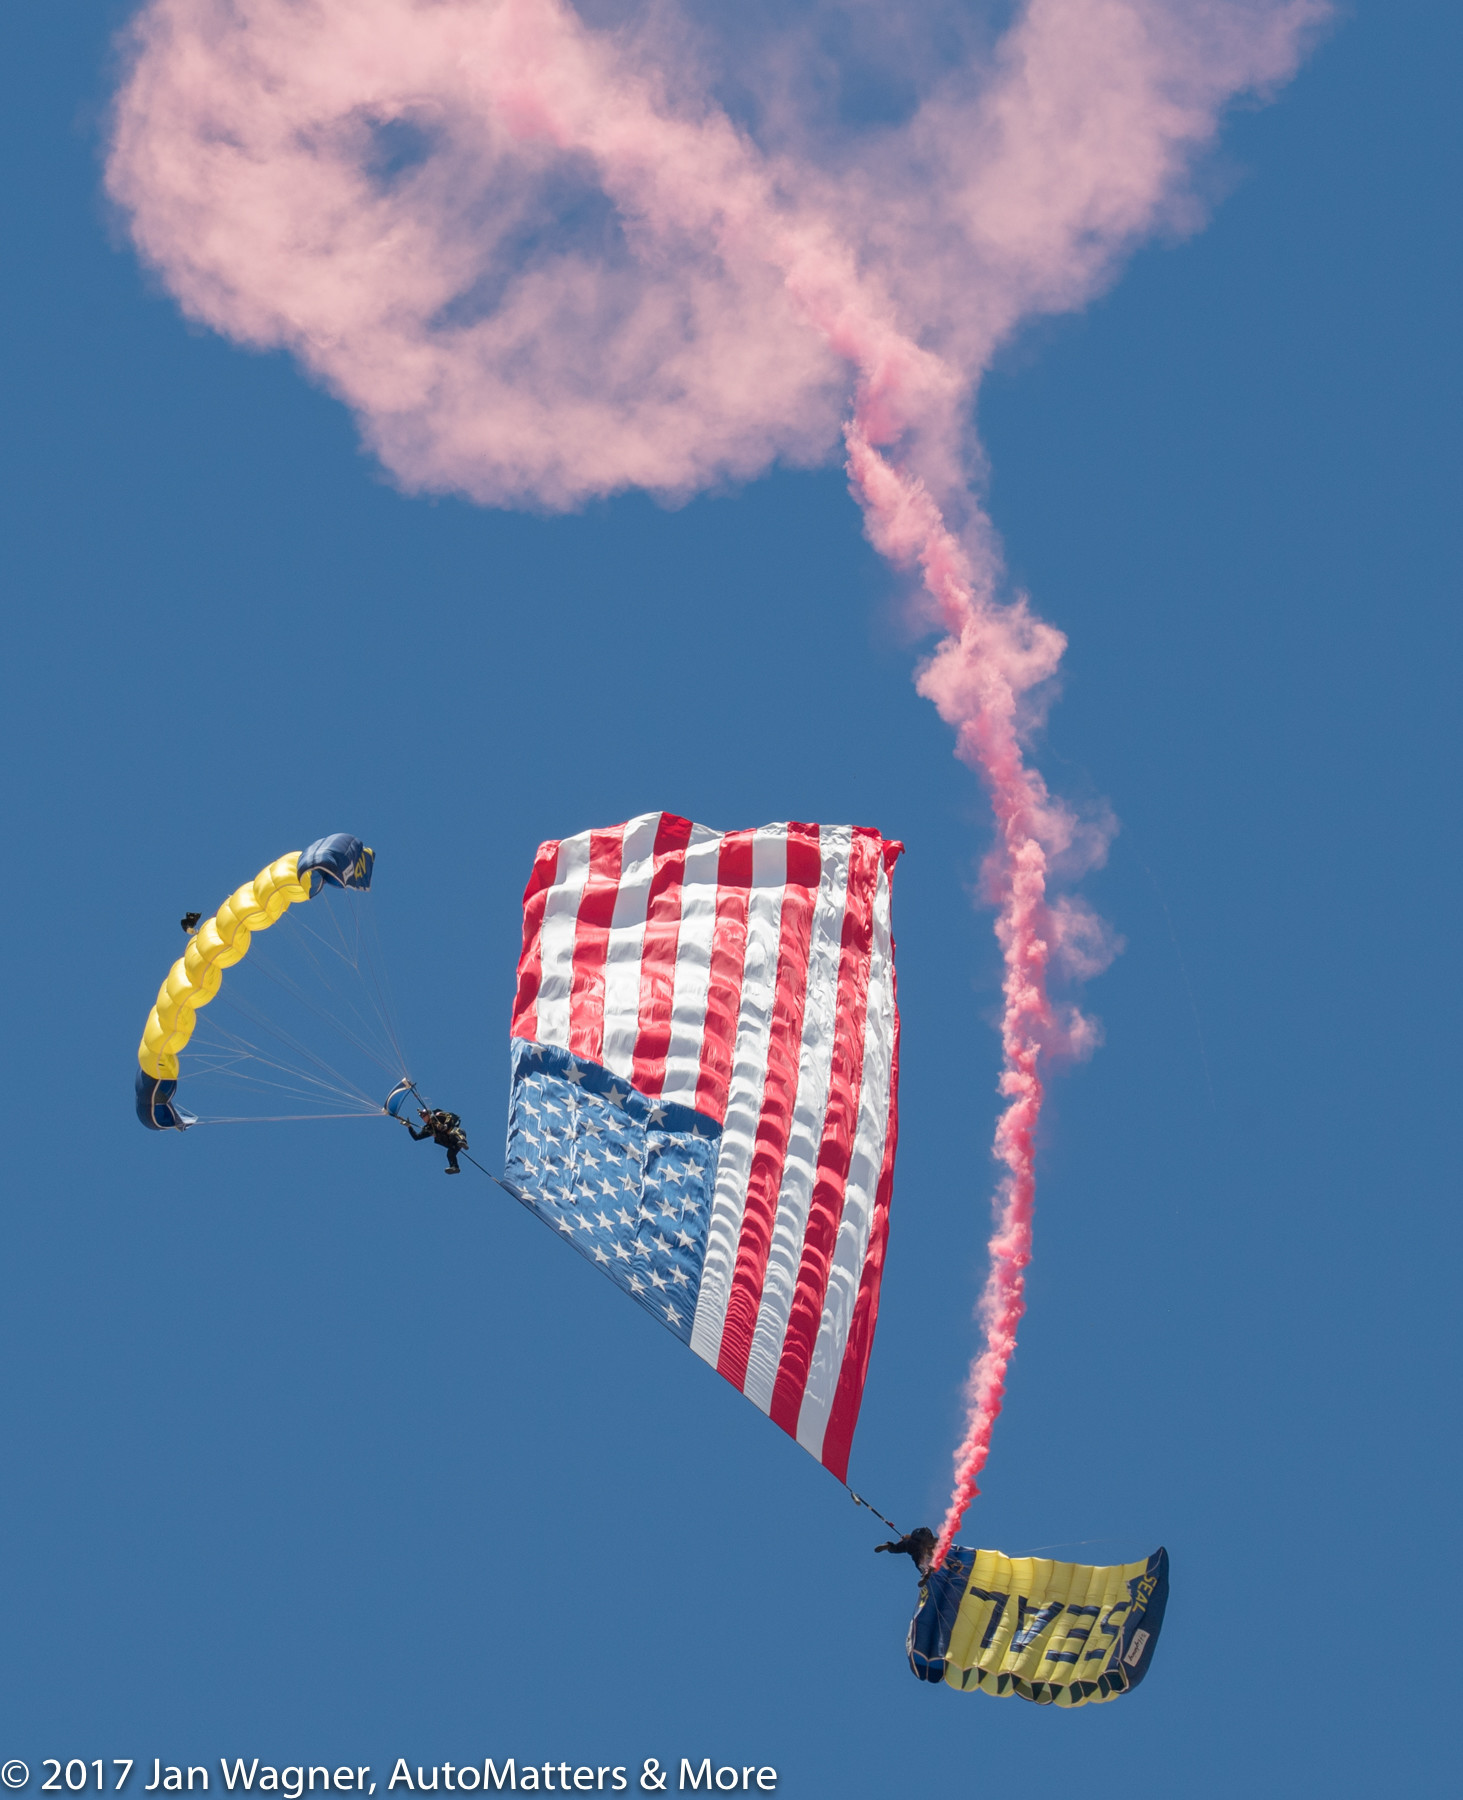 Sky diving by the U.S. Navy Leap Frogs